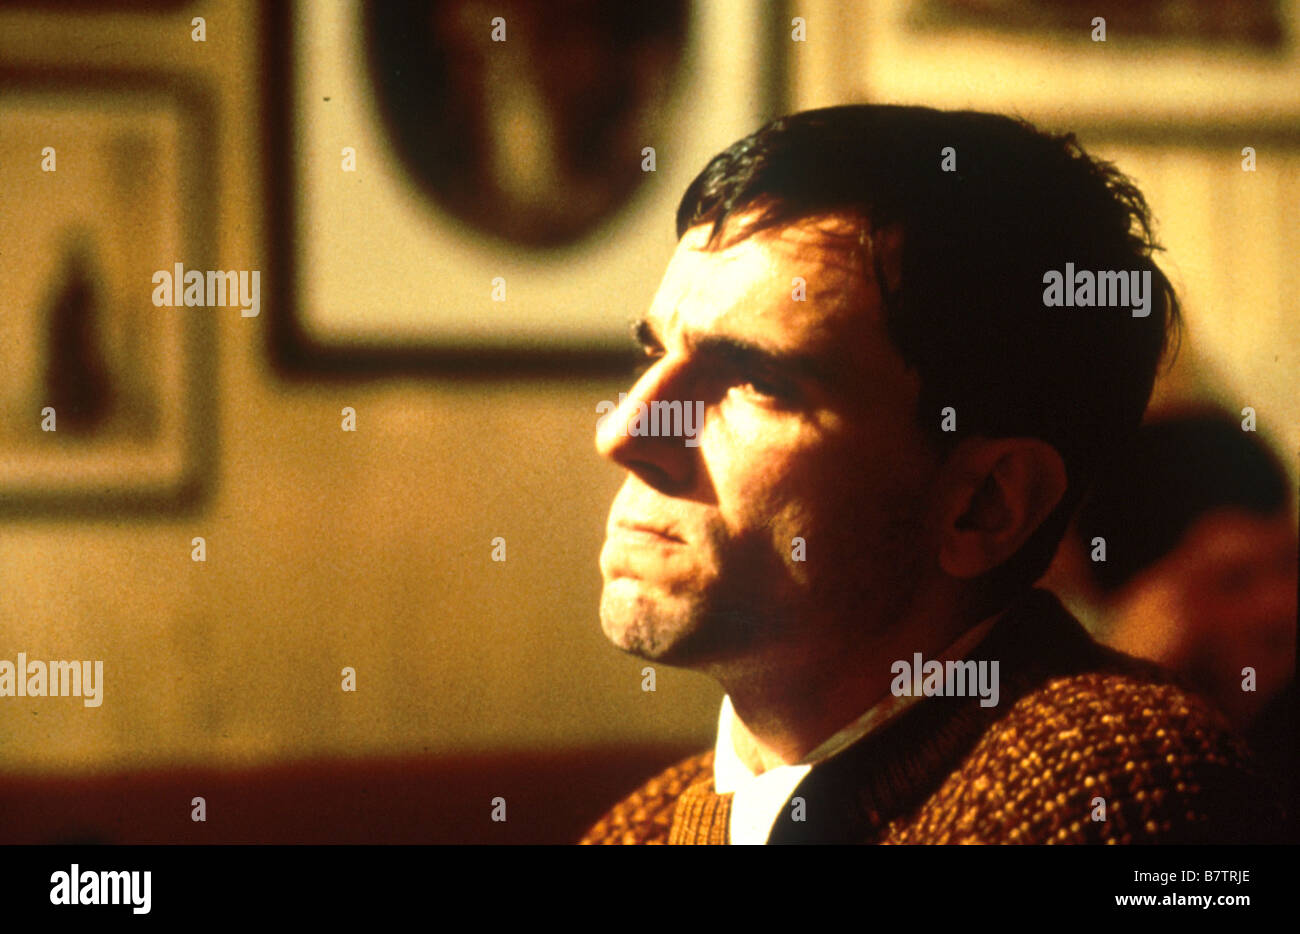 My Left Foot: The Story of Christy Brown  Year: 1989 - Ireland / UK Daniel Day-Lewis  Director: Jim Sheridan - Stock Image